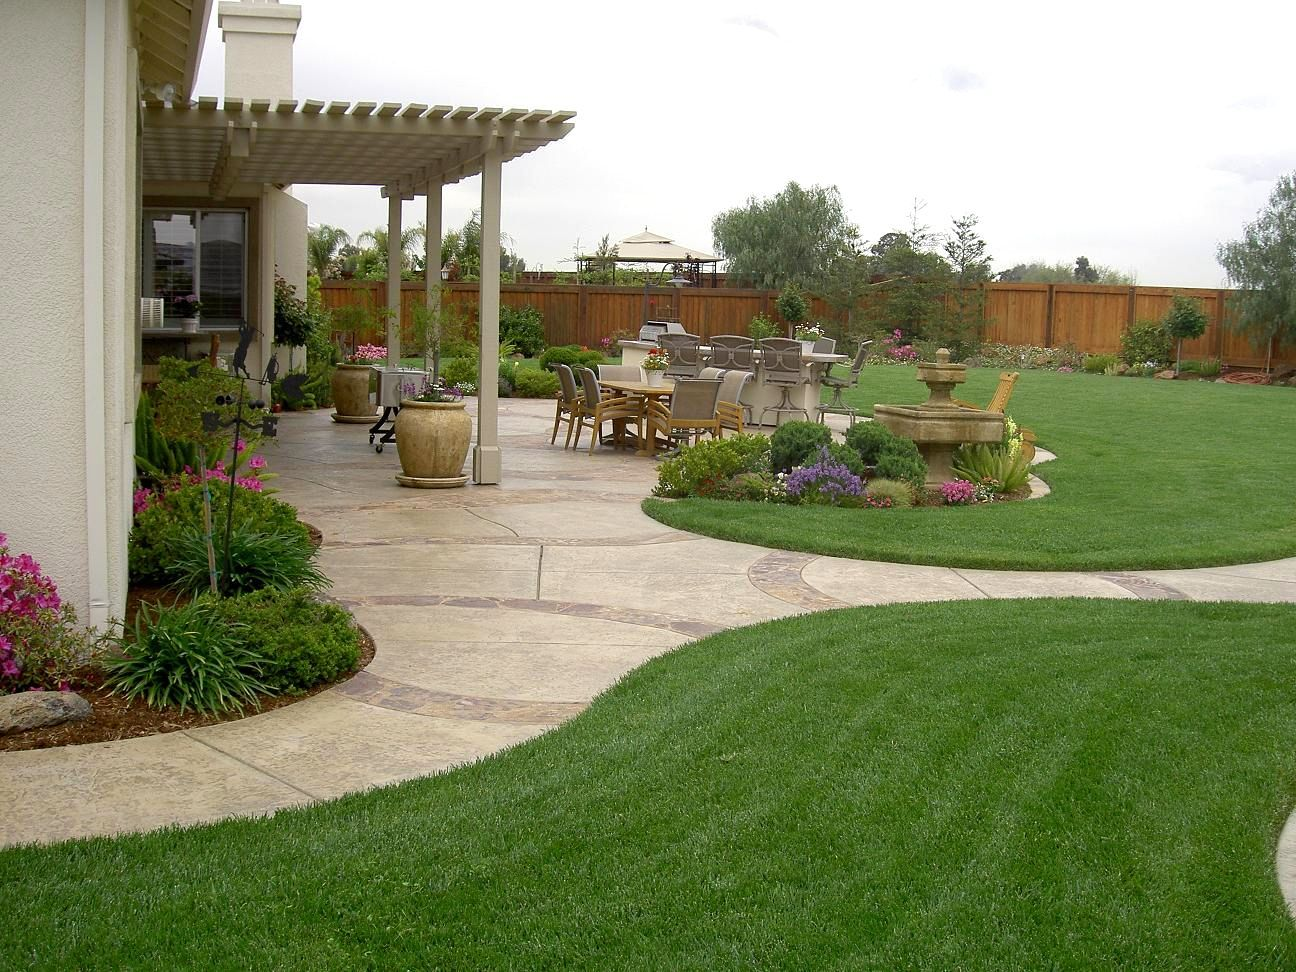 landscaping ideas for backyard for dogs backyard landscaping ideas